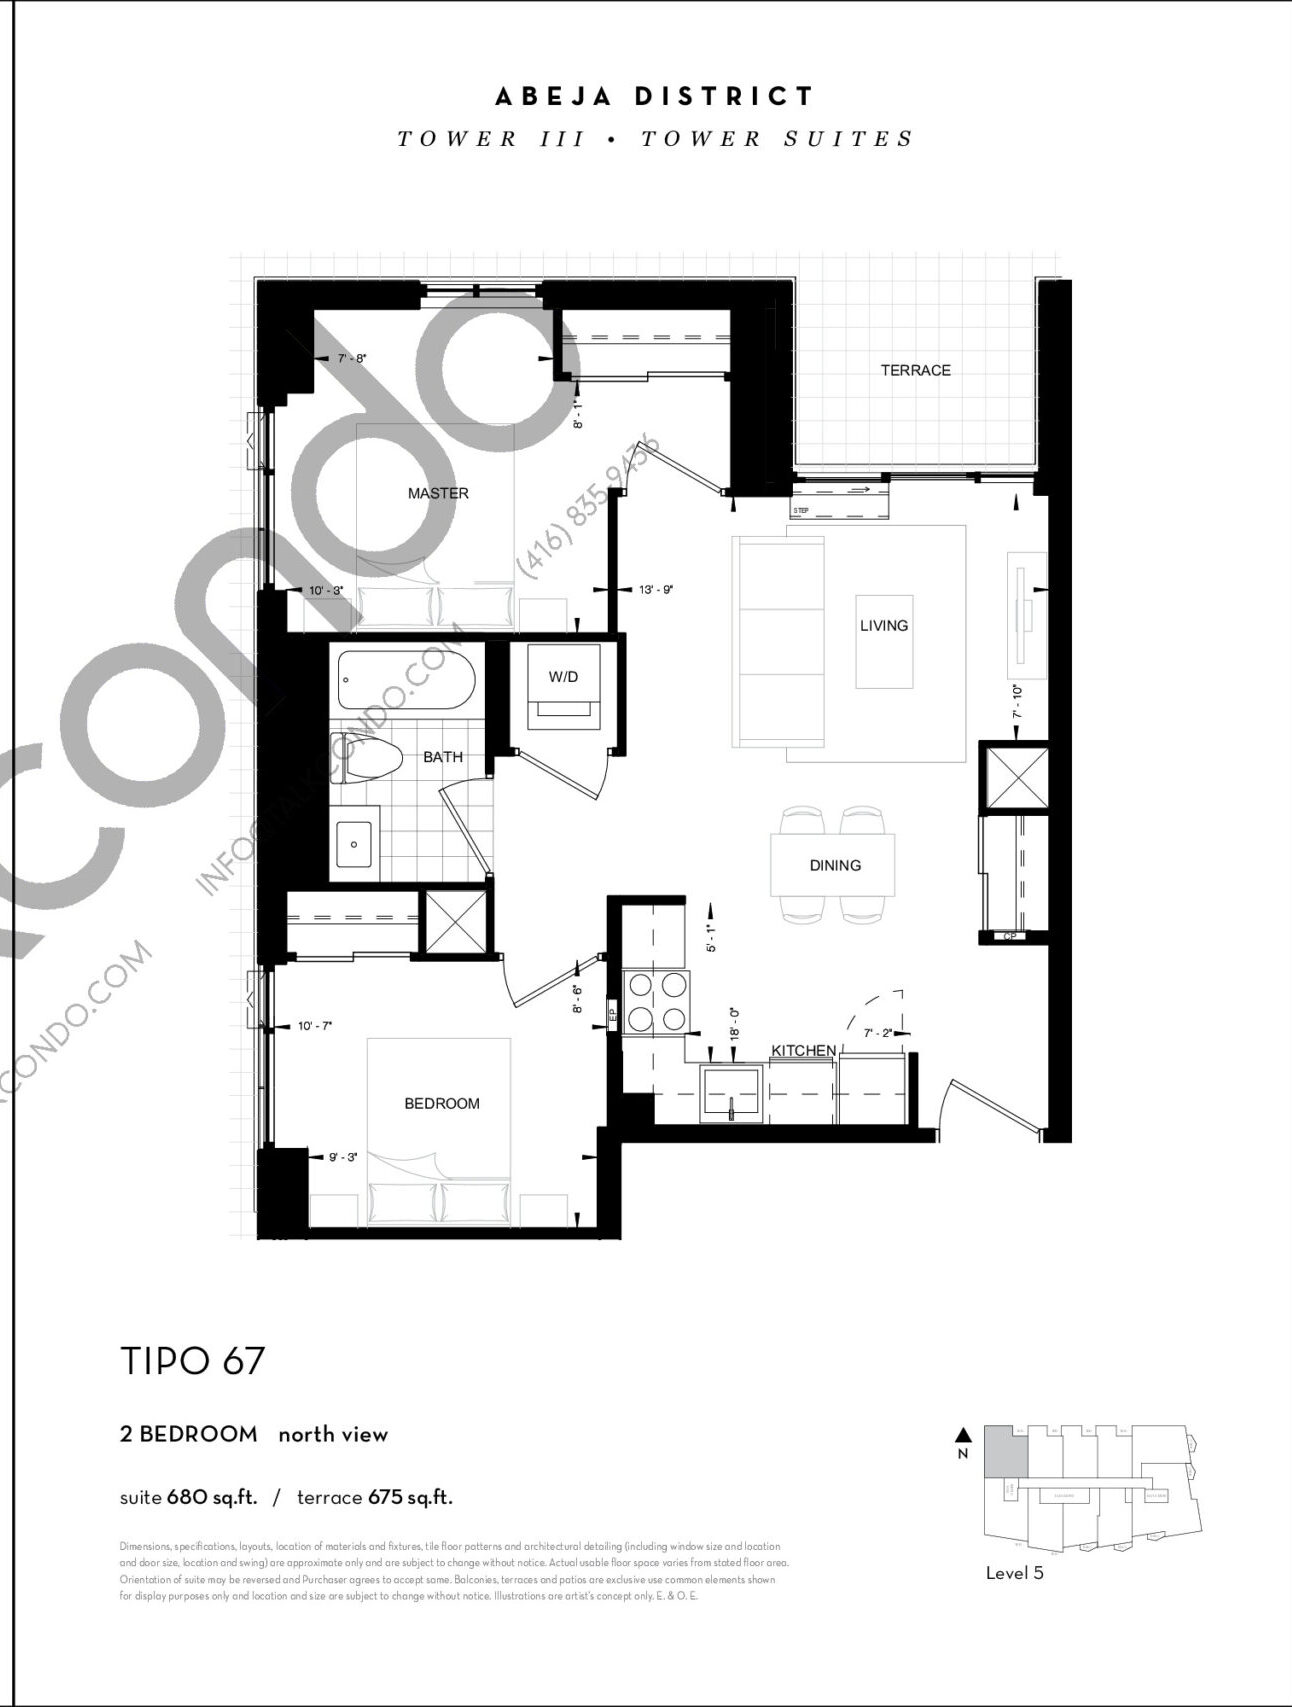 TIPO 67 Floor Plan at Abeja District Condos Tower 3 - 680 sq.ft